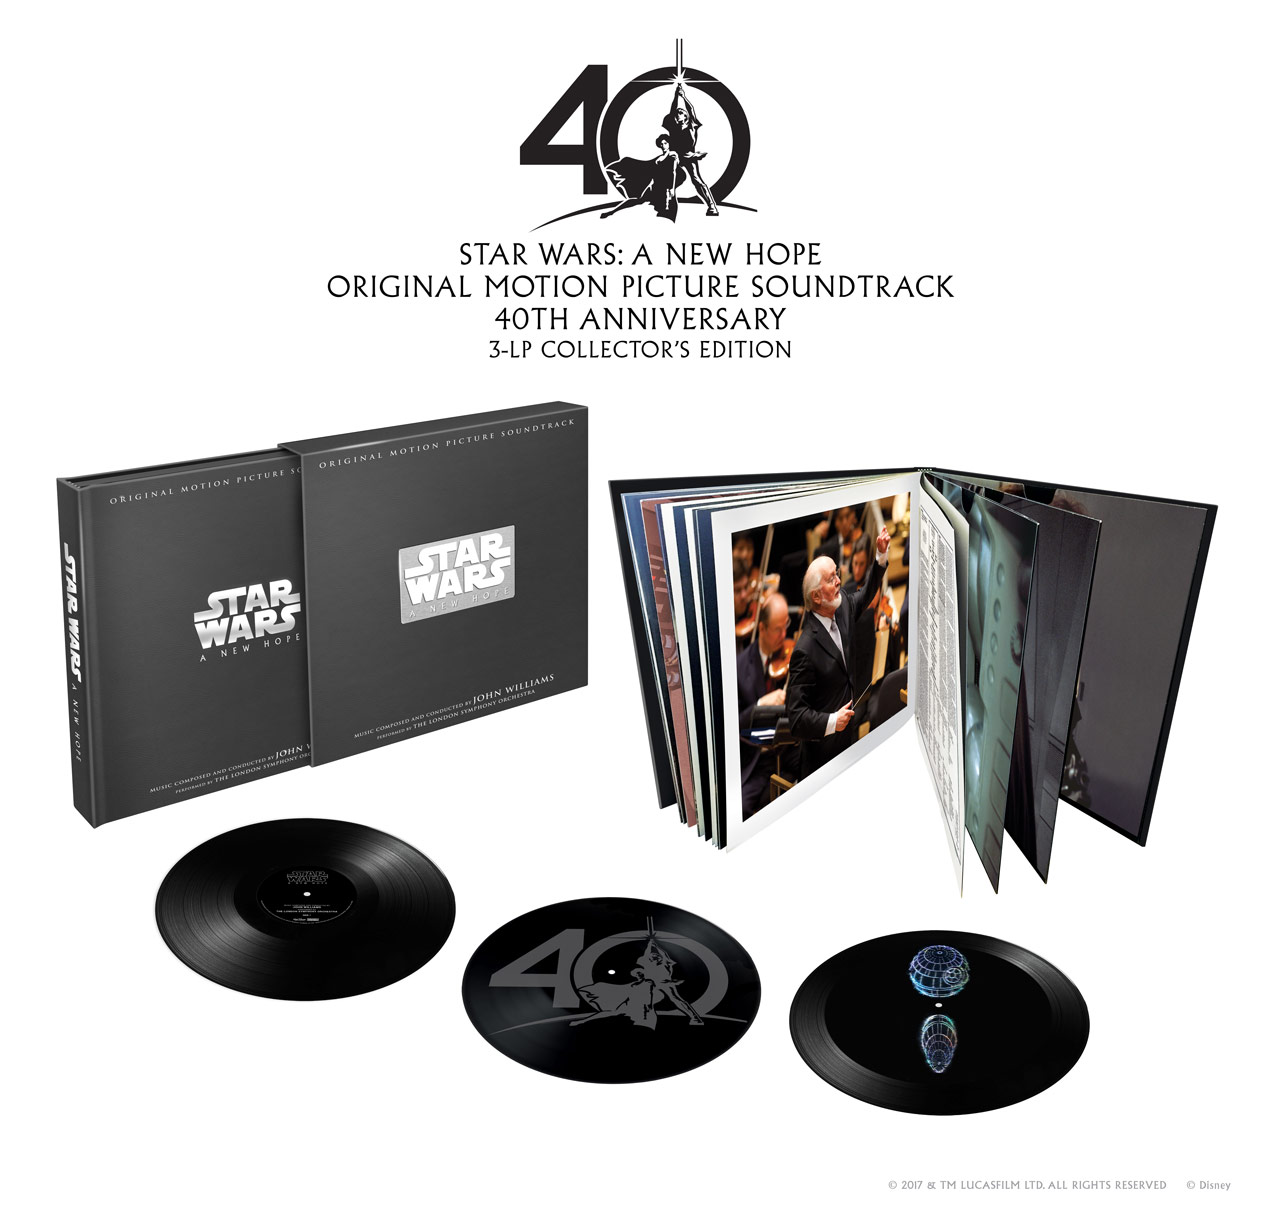 star wars a new hope soundtrack vinyl box set coming  the box set will also include rare behind the scenes photos from the film s production and scoring sessions along two essays in the accompanying